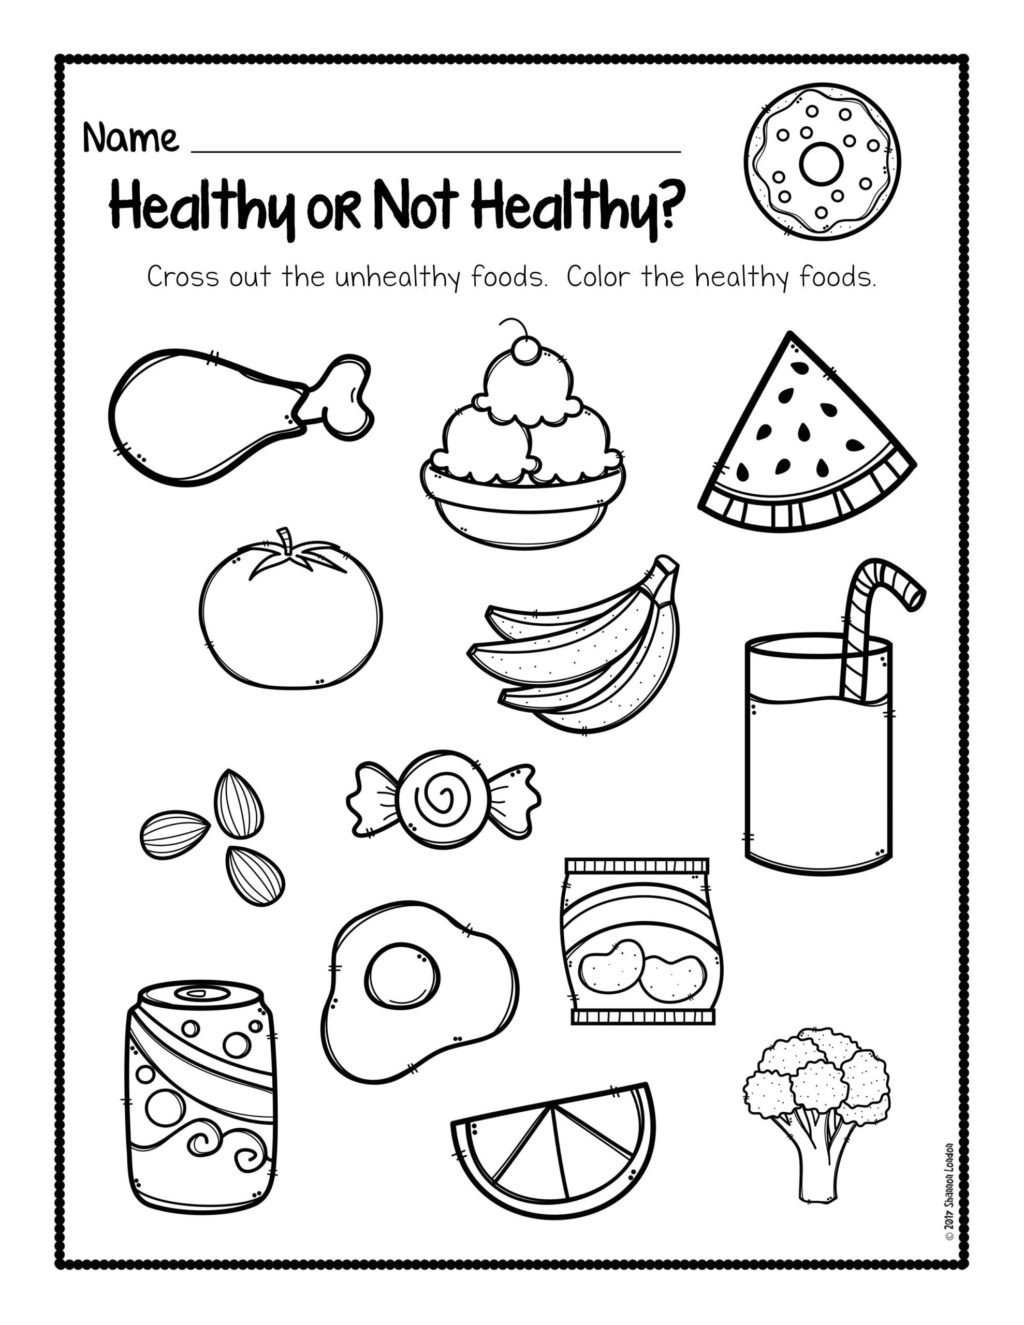 Middle School Health Worksheets Pdf Worksheet Free Printable Learningheets for Pr Factoring